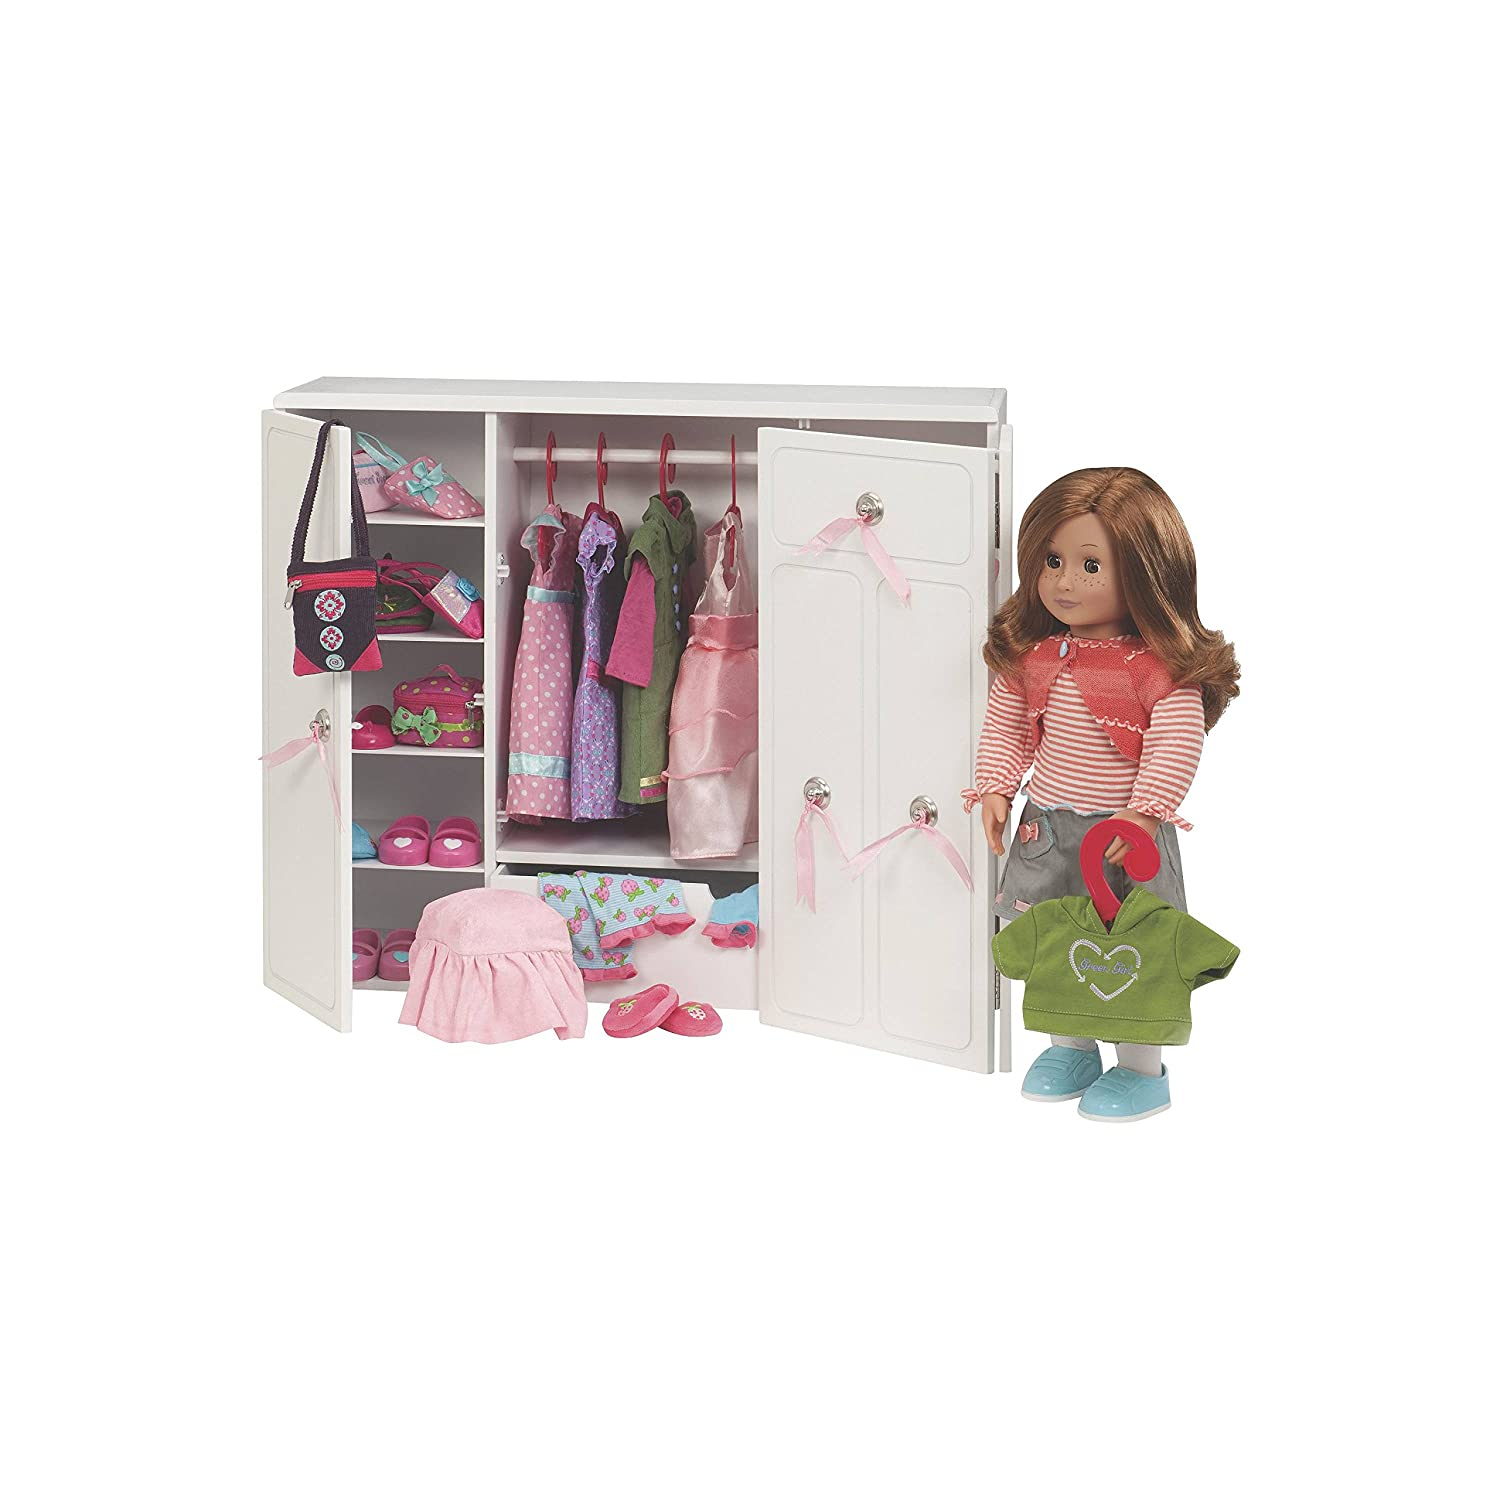 Amazoncom Our Generation Dolls Wooden Wardrobe Doll Toys - Barbie doll storage ideas